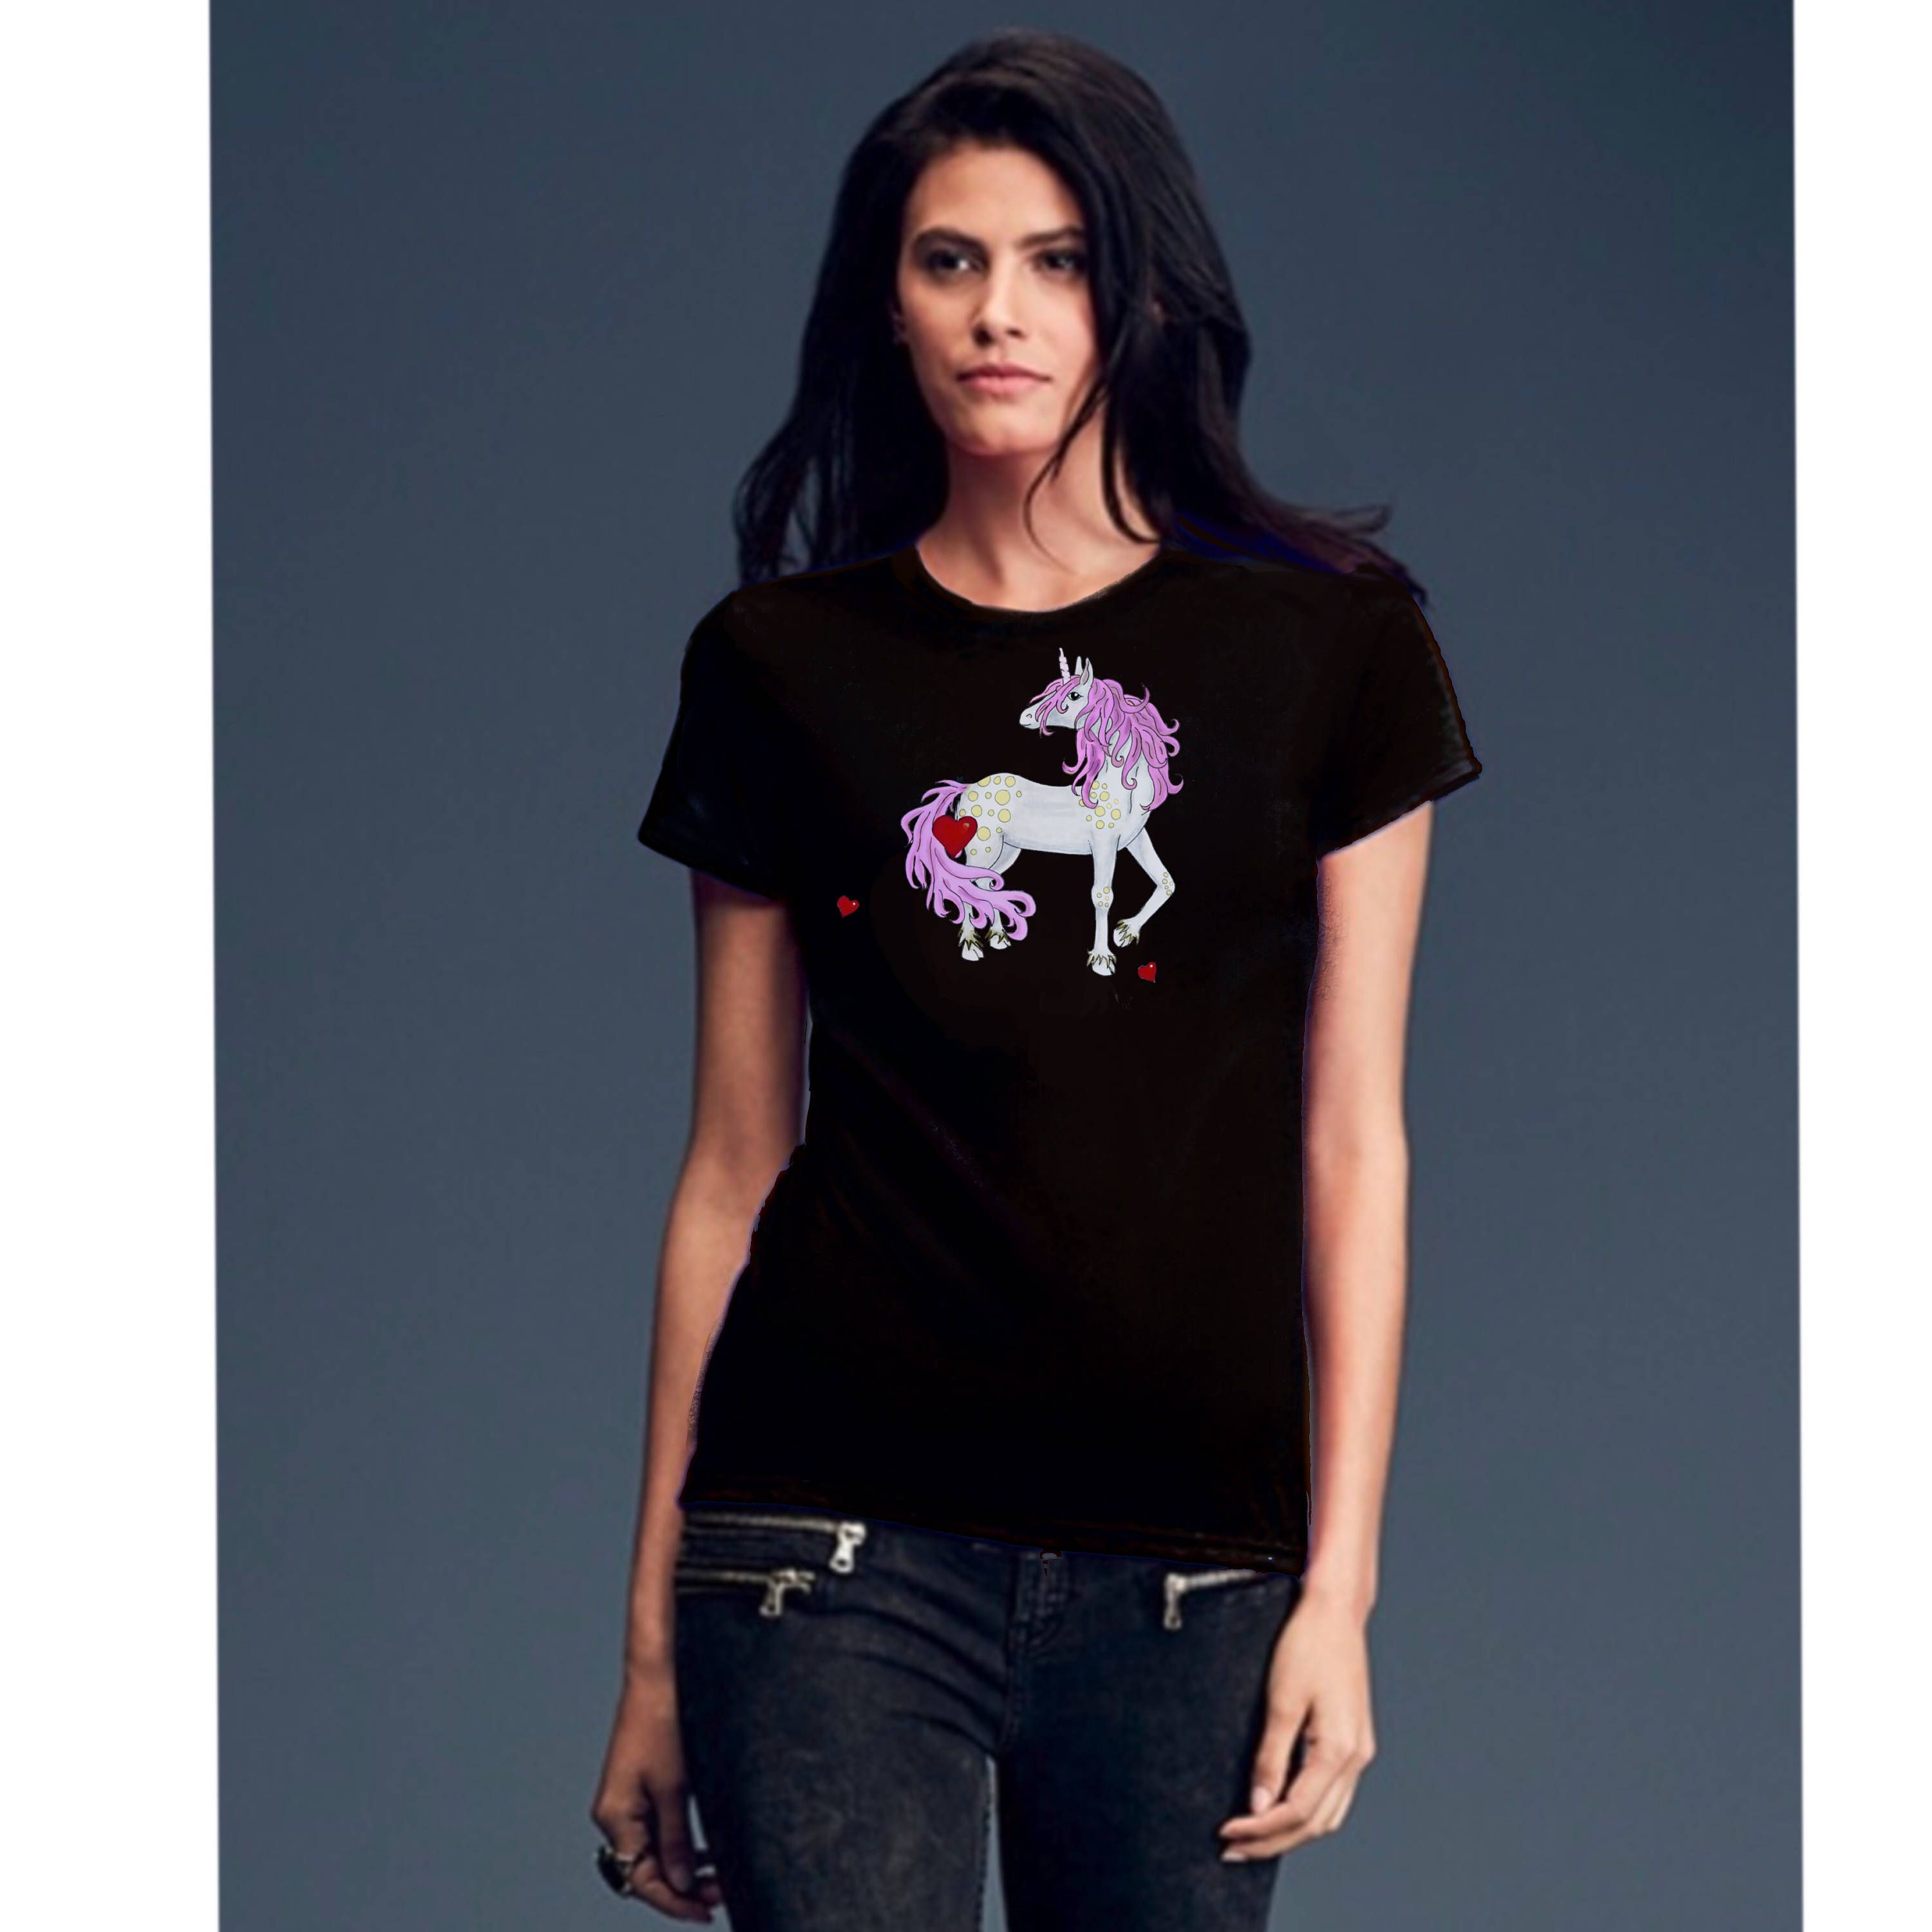 4b535145f8d Unicorn shirt